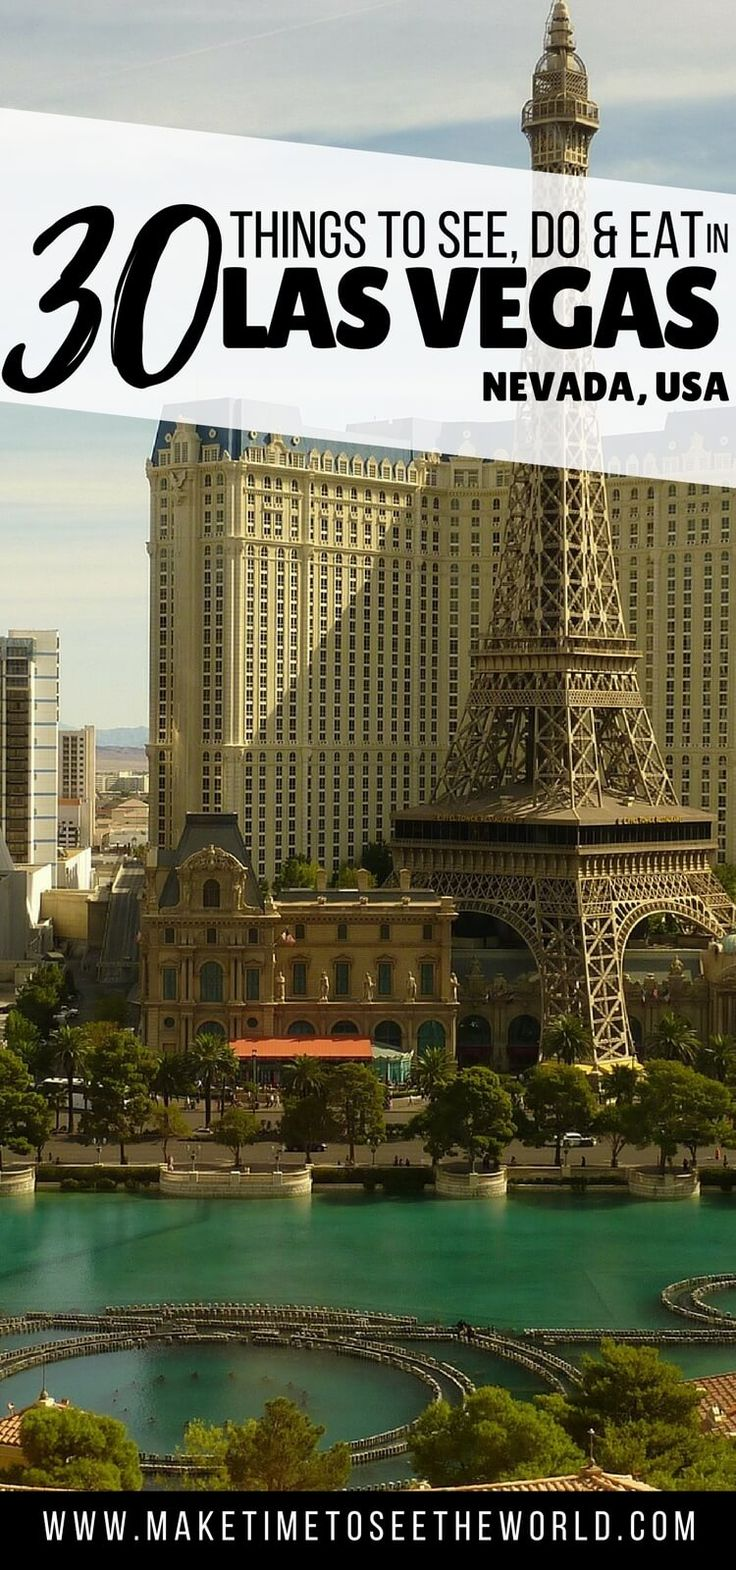 The Ultimate Las Vegas travel guide to help you plan your visit inc Where to Stay, What to eat, the Best Things To Do in Las Vegas + Day Trip Ideas! ***************************************************************************** Las Vegas   Las Vegas Tips   Las Vegas Things To Do   Las Vagas Vacation   Day Trips from Las Vegas   What to do in Las Vegas   Las Vegas Tourist Attractions   Vegas   What to do in Vegas   Las Vegas Things To Do   Things to do in Vegas